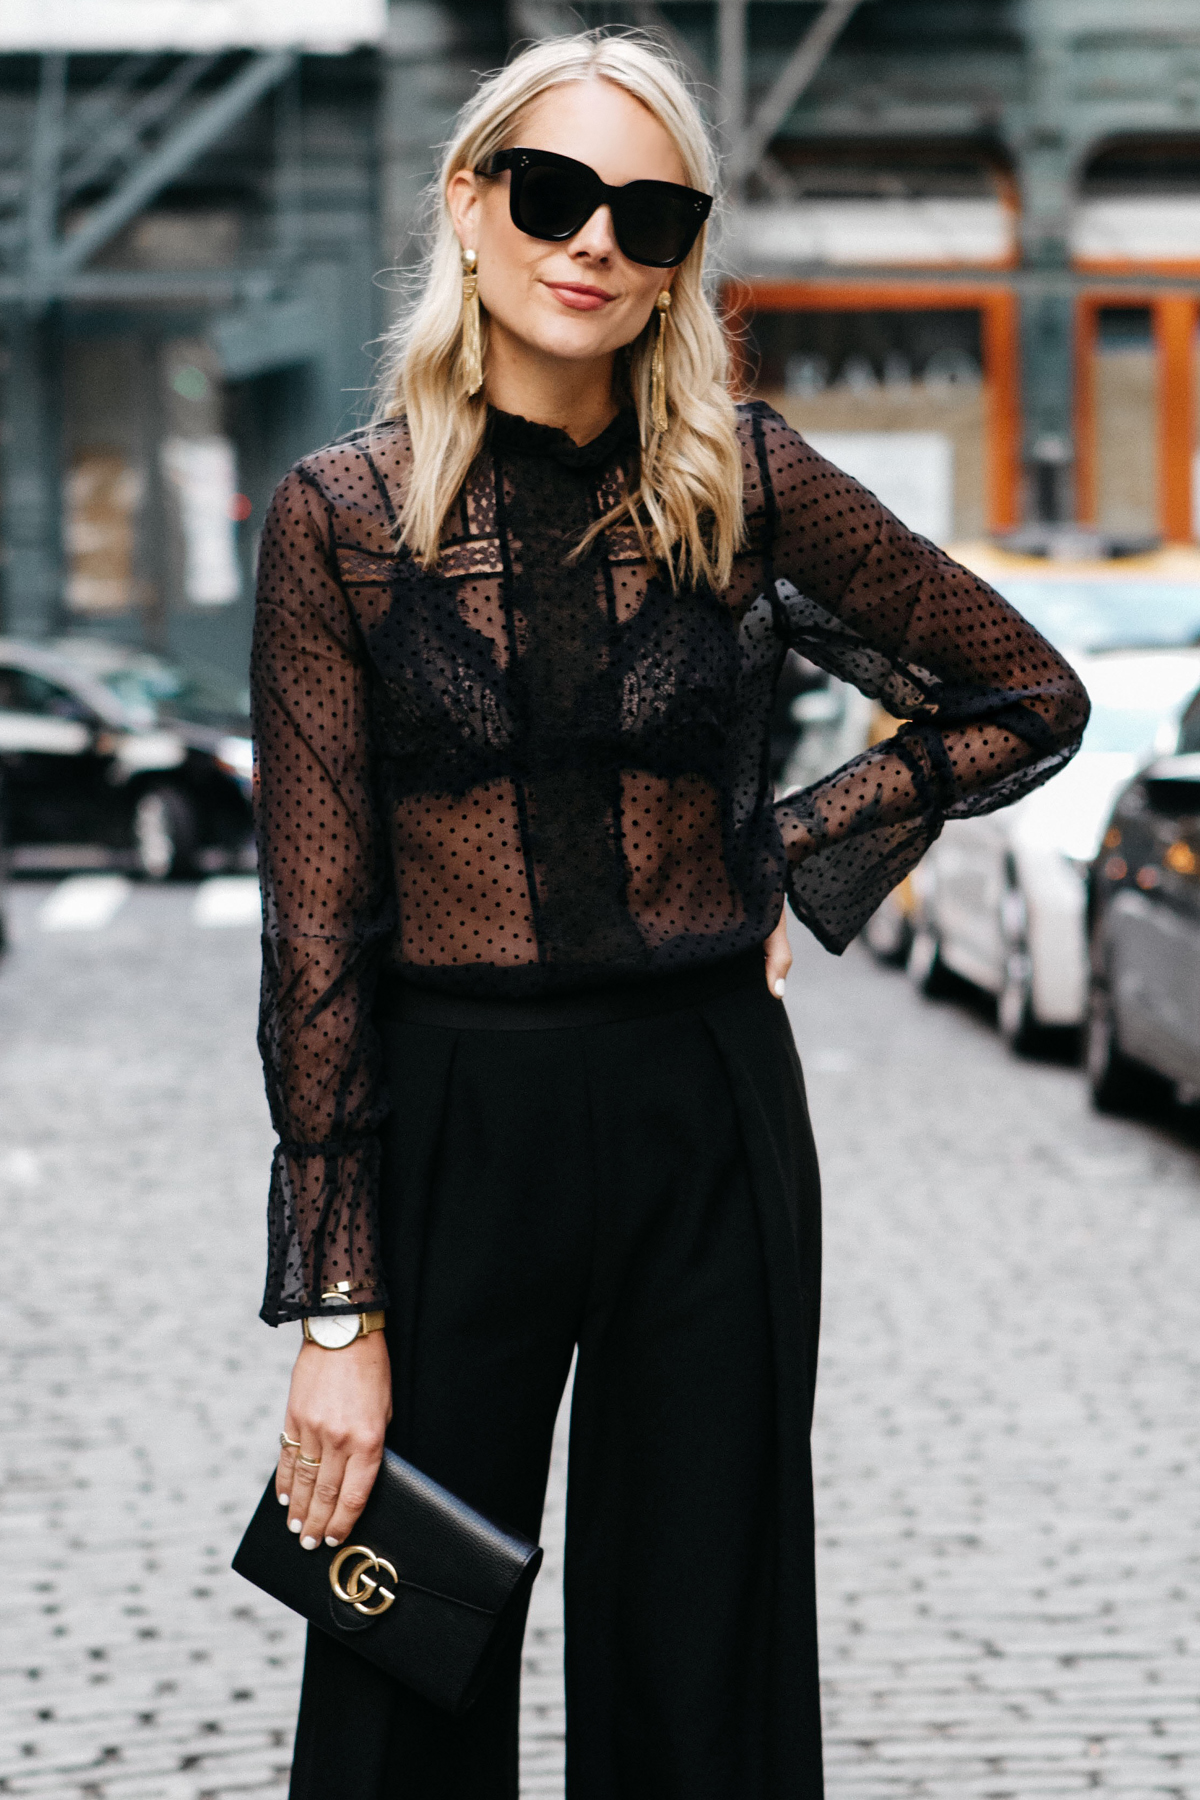 Blonde Woman Wearing Anine Bing Black Lace Top Black Lace Bra Gucci Marmont Handbag Black Culottes Fashion Jackson Dallas Blogger Fashion Blogger Street Style NYFW